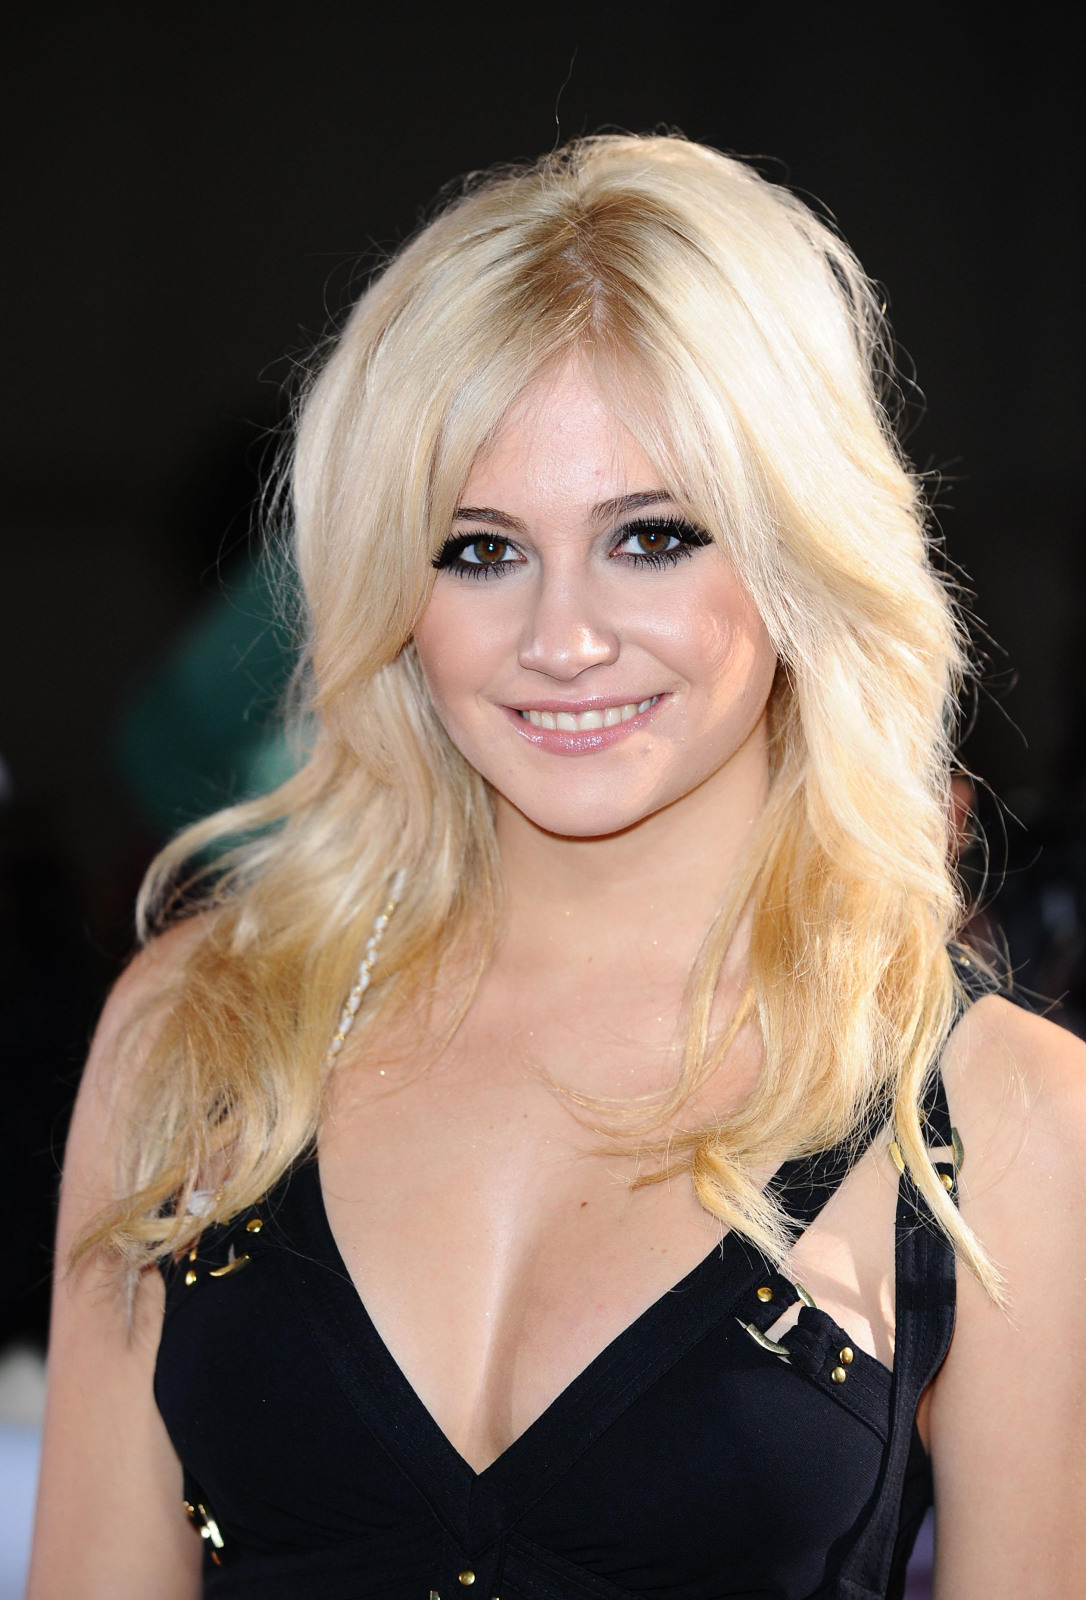 http://4.bp.blogspot.com/_JUw2aRvPUwc/SwEa86FV6fI/AAAAAAAALXc/60aEnSdT20A/s1600/Pixie_Lott_Home_www_pixielott_com_The_official_website_for_Pixie_Lott_Listen_to_the_latest.jpg